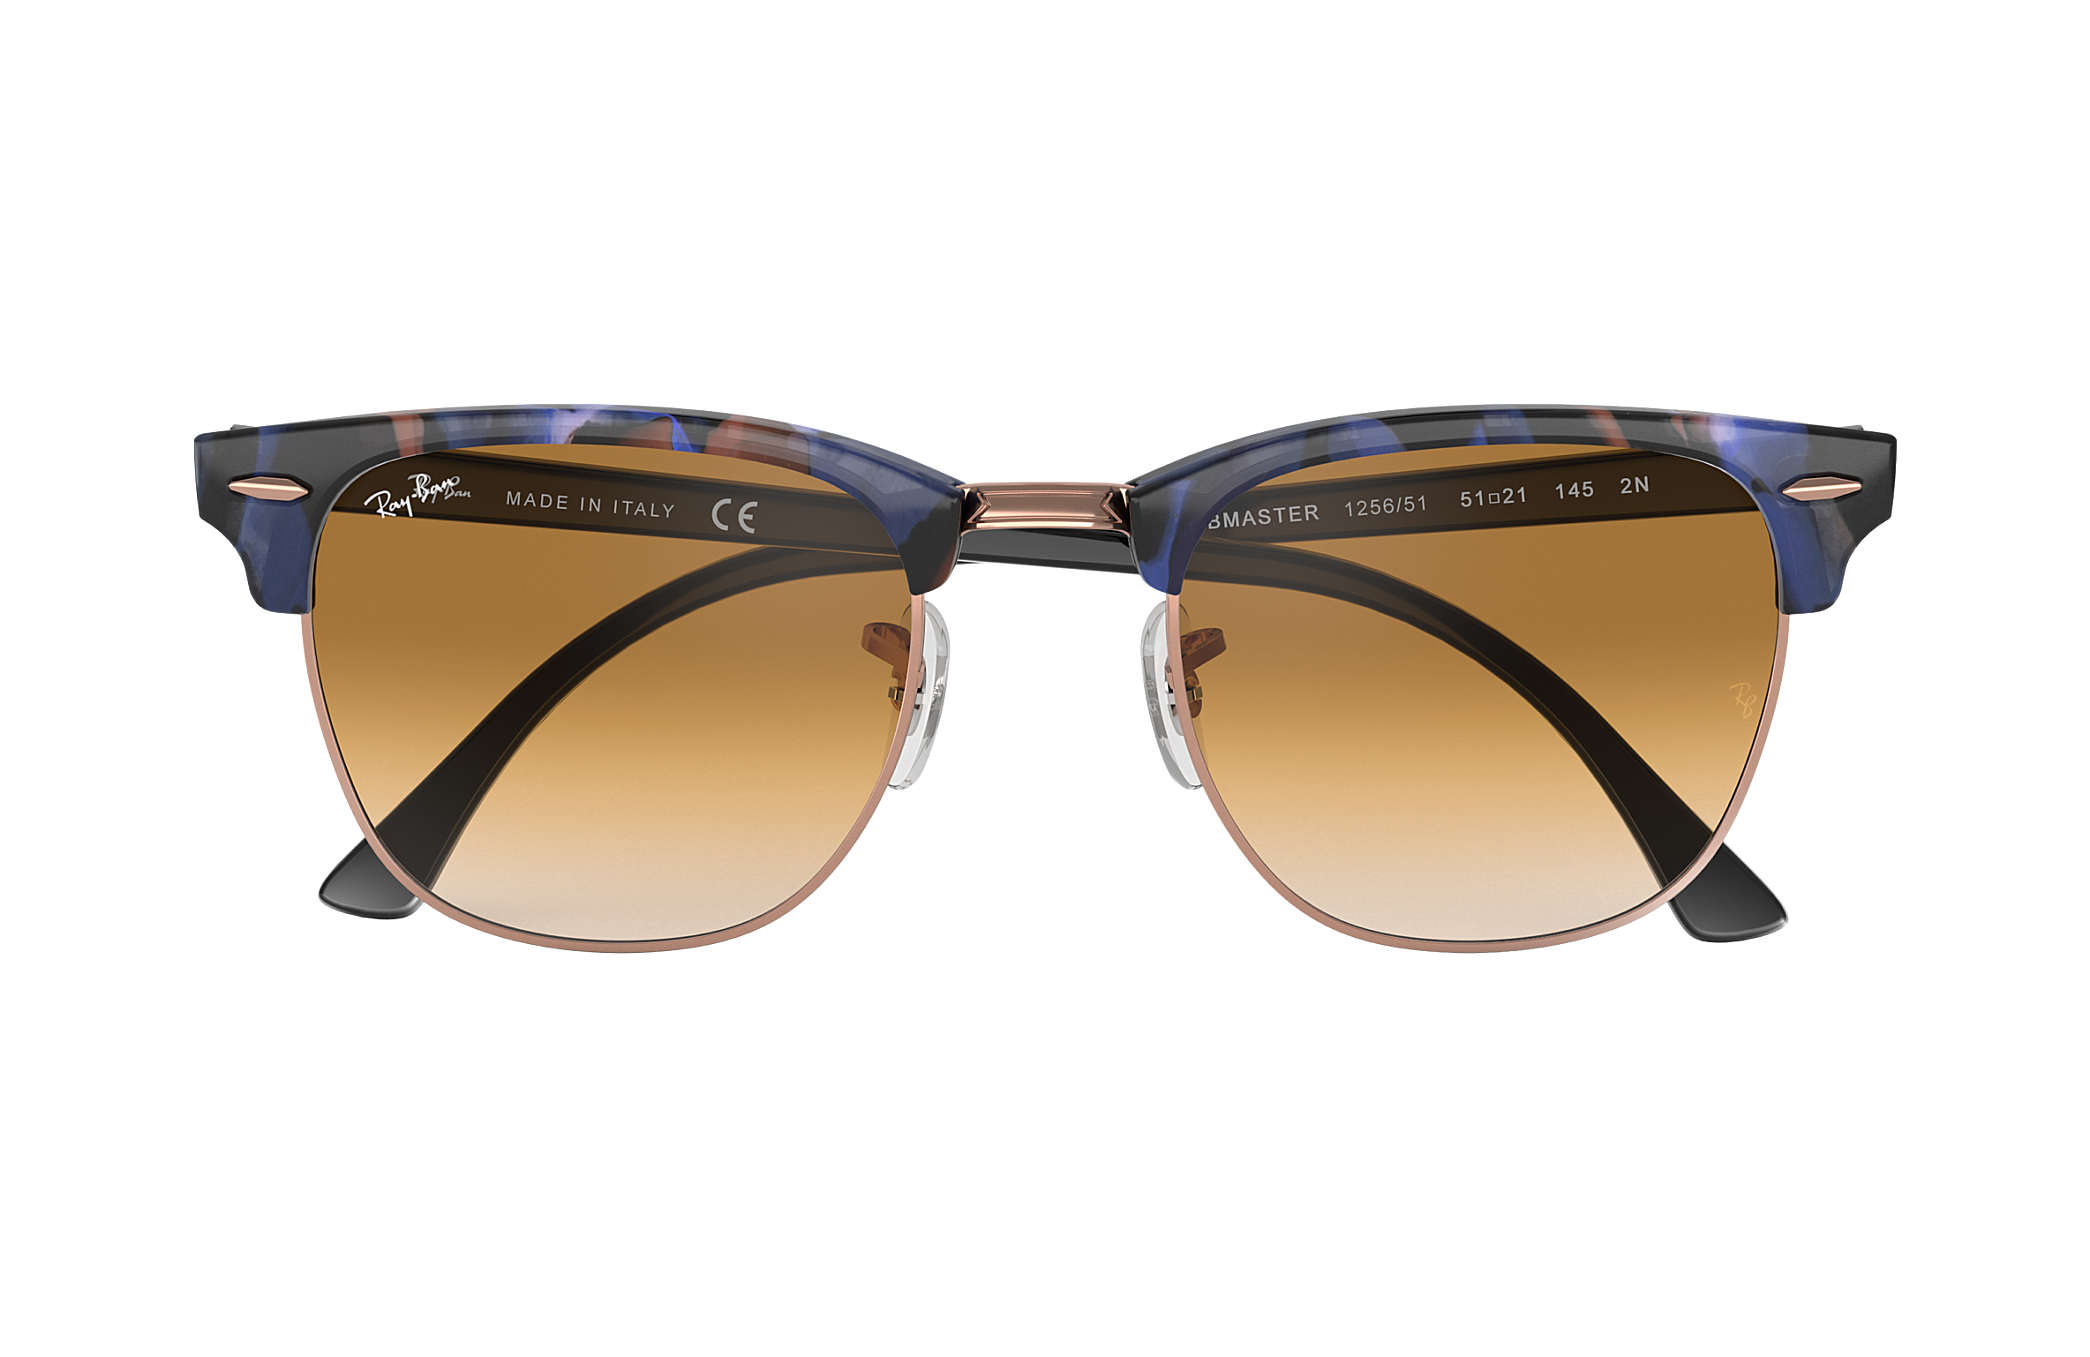 49e17c6260fc7 Ray-Ban Clubmaster Fleck RB3016 Spotted Brown and Blue - Acetate ...